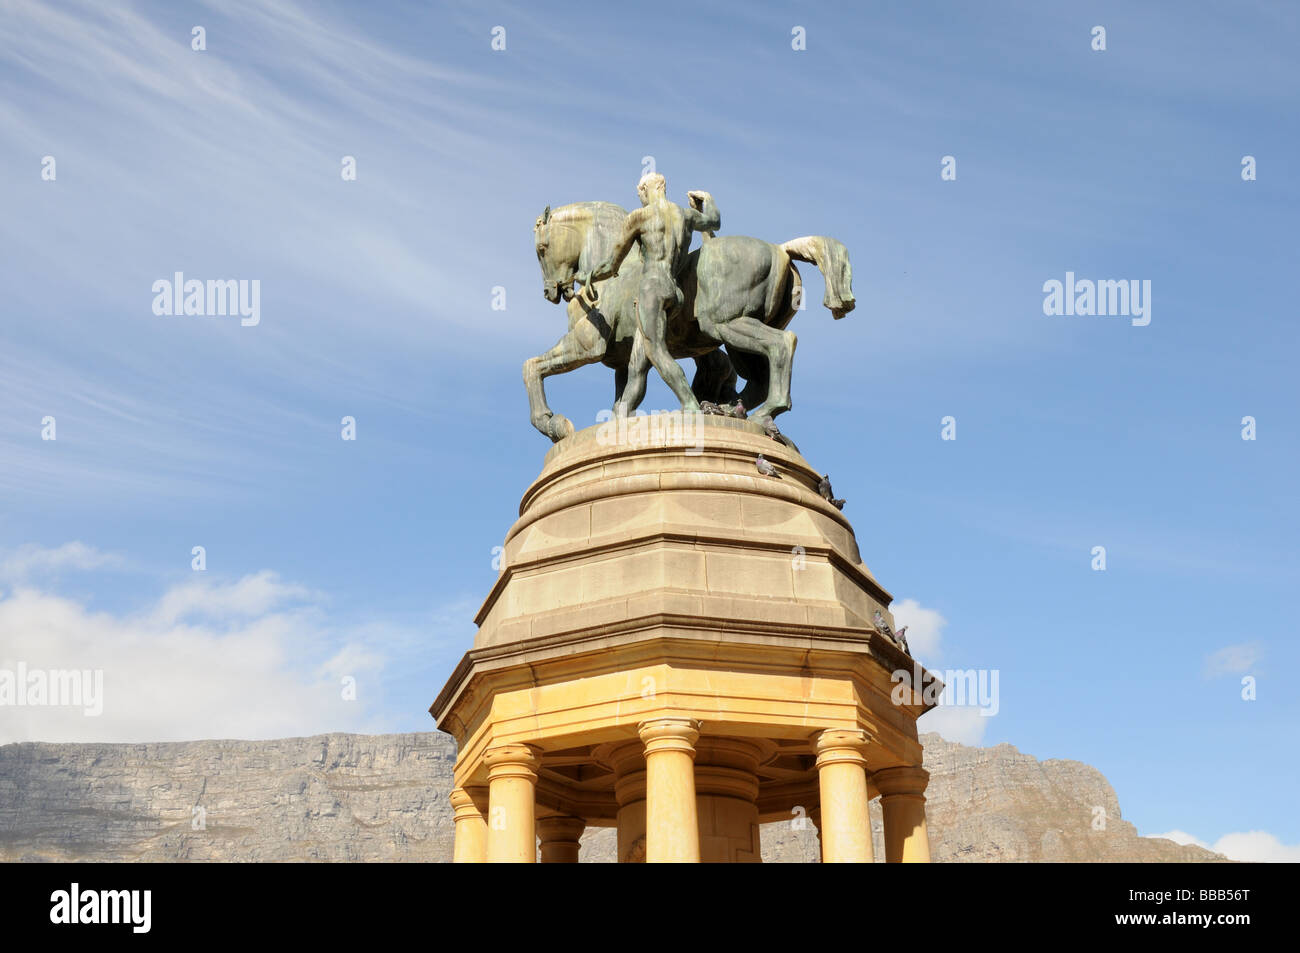 Memorial to Delville Wood Battle of The Somme Company's Garden Cape town South Africa - Stock Image